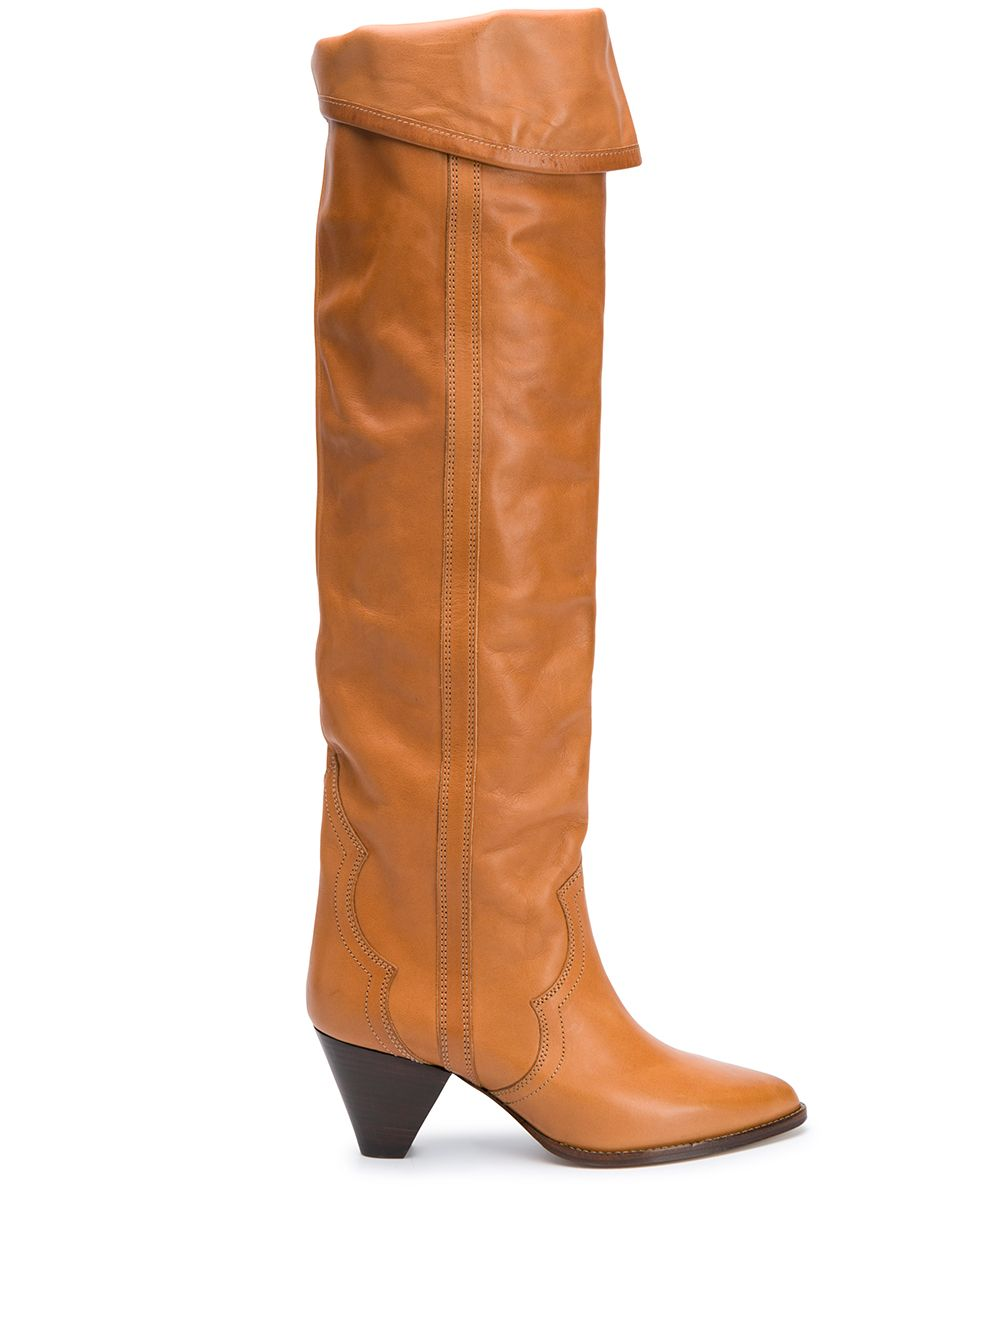 Remko Leather Boots